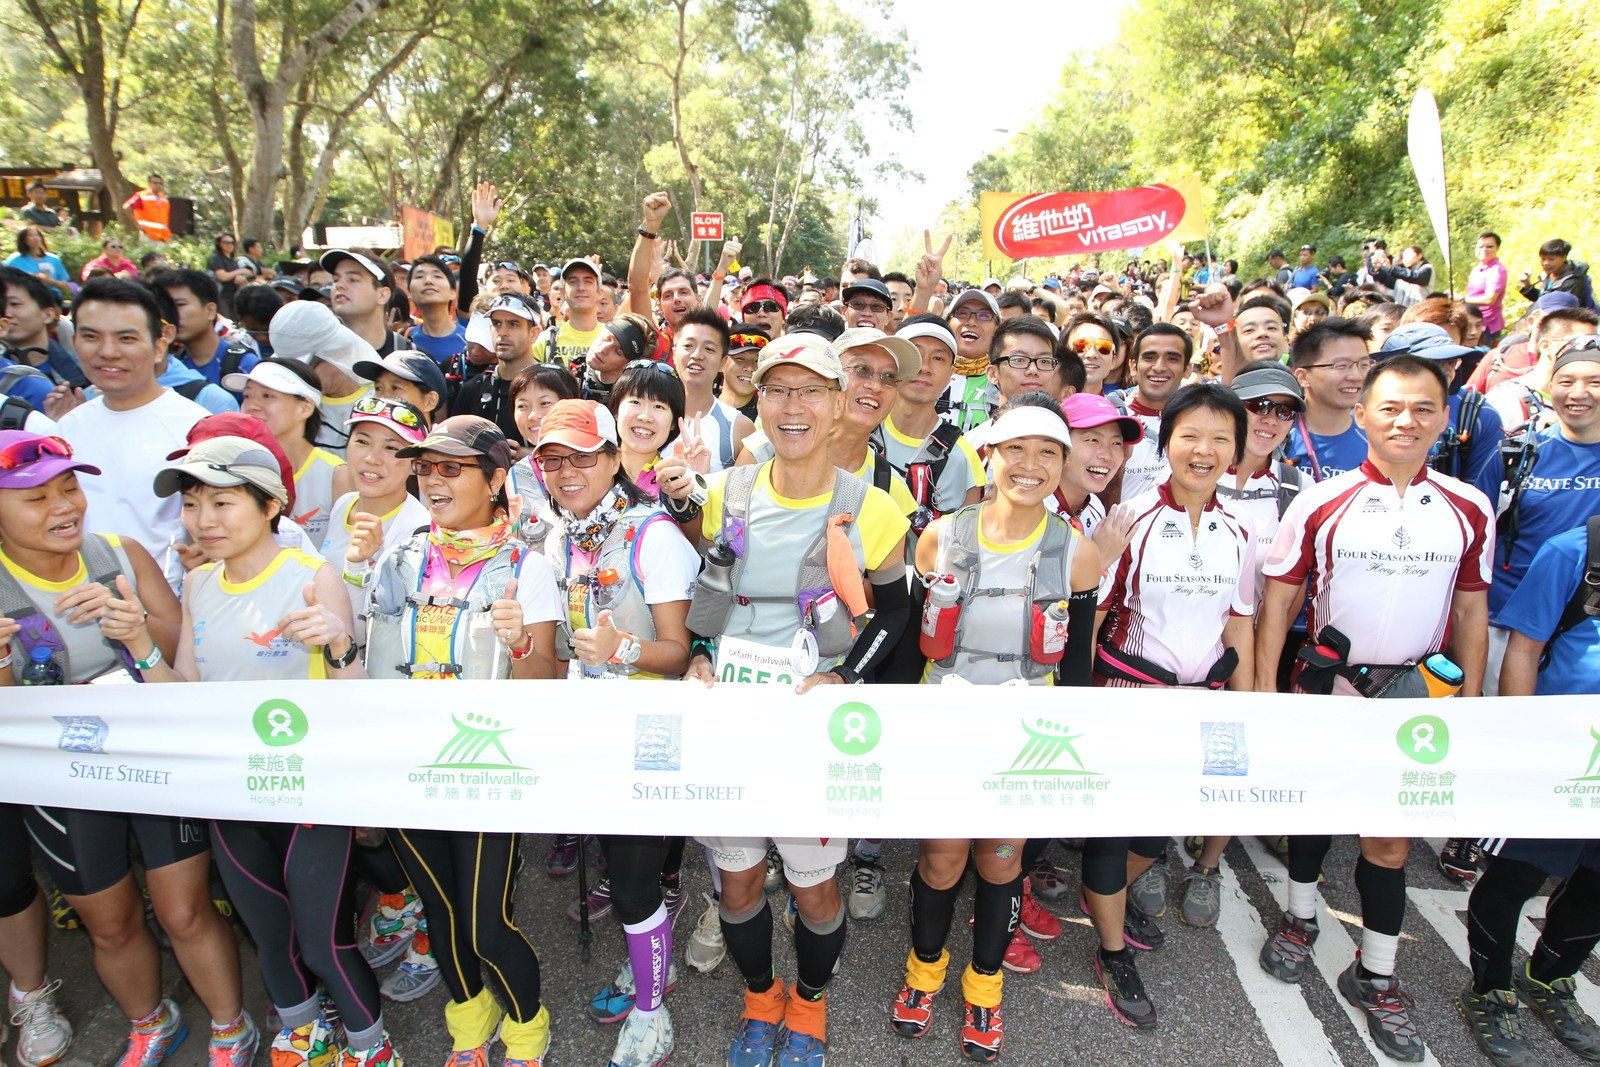 4,800 walkers of Oxfam Trailwalker 2013 will take the 100 km challenge along the MacLehose Trail and other trail in teams of four within 48 hours.